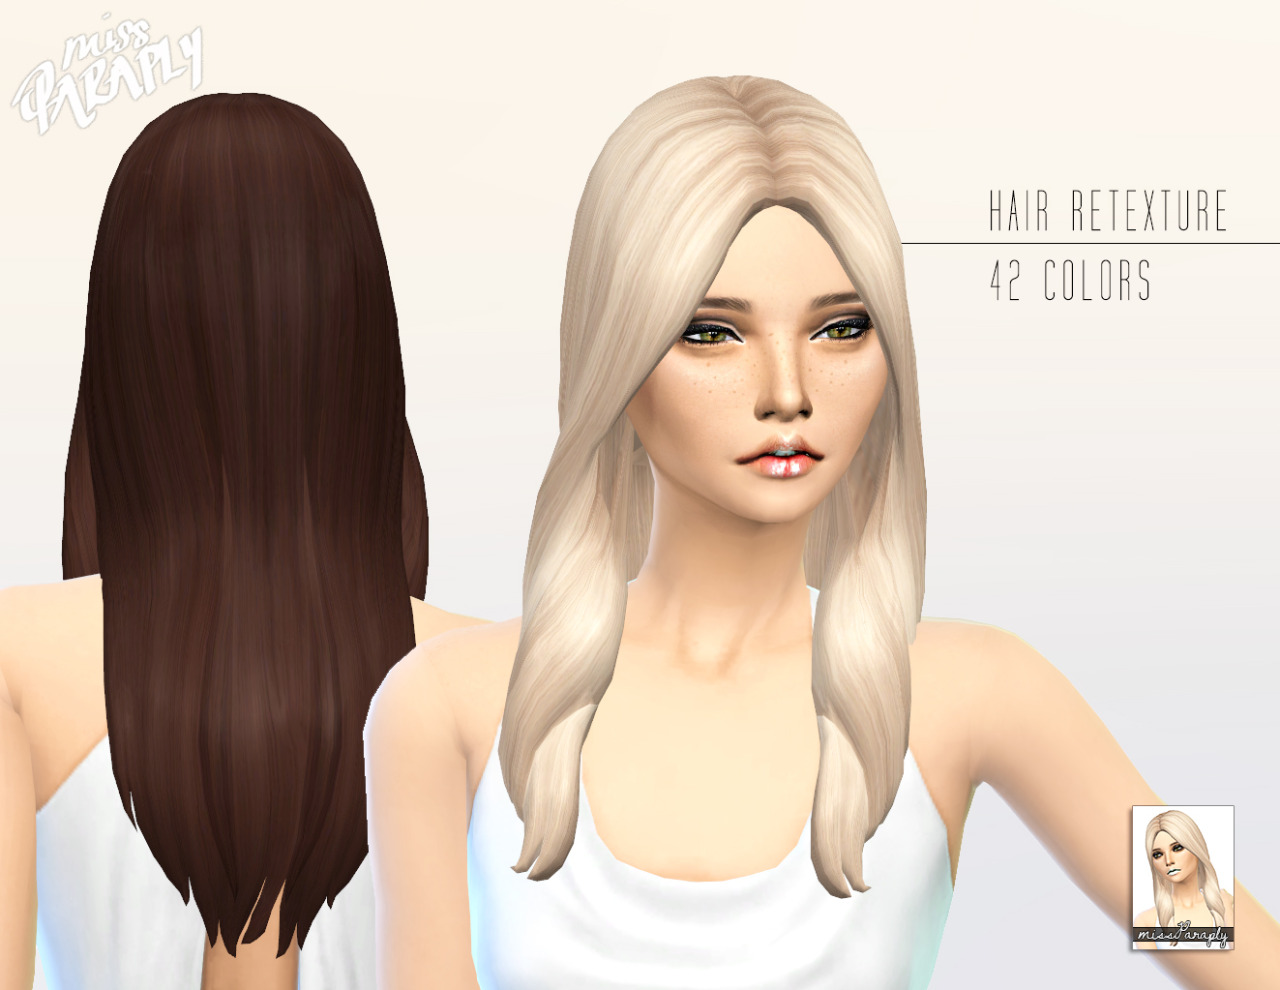 Sims 4 Hairs Miss Paraply Kiara 24 Oblivion Hairstyle